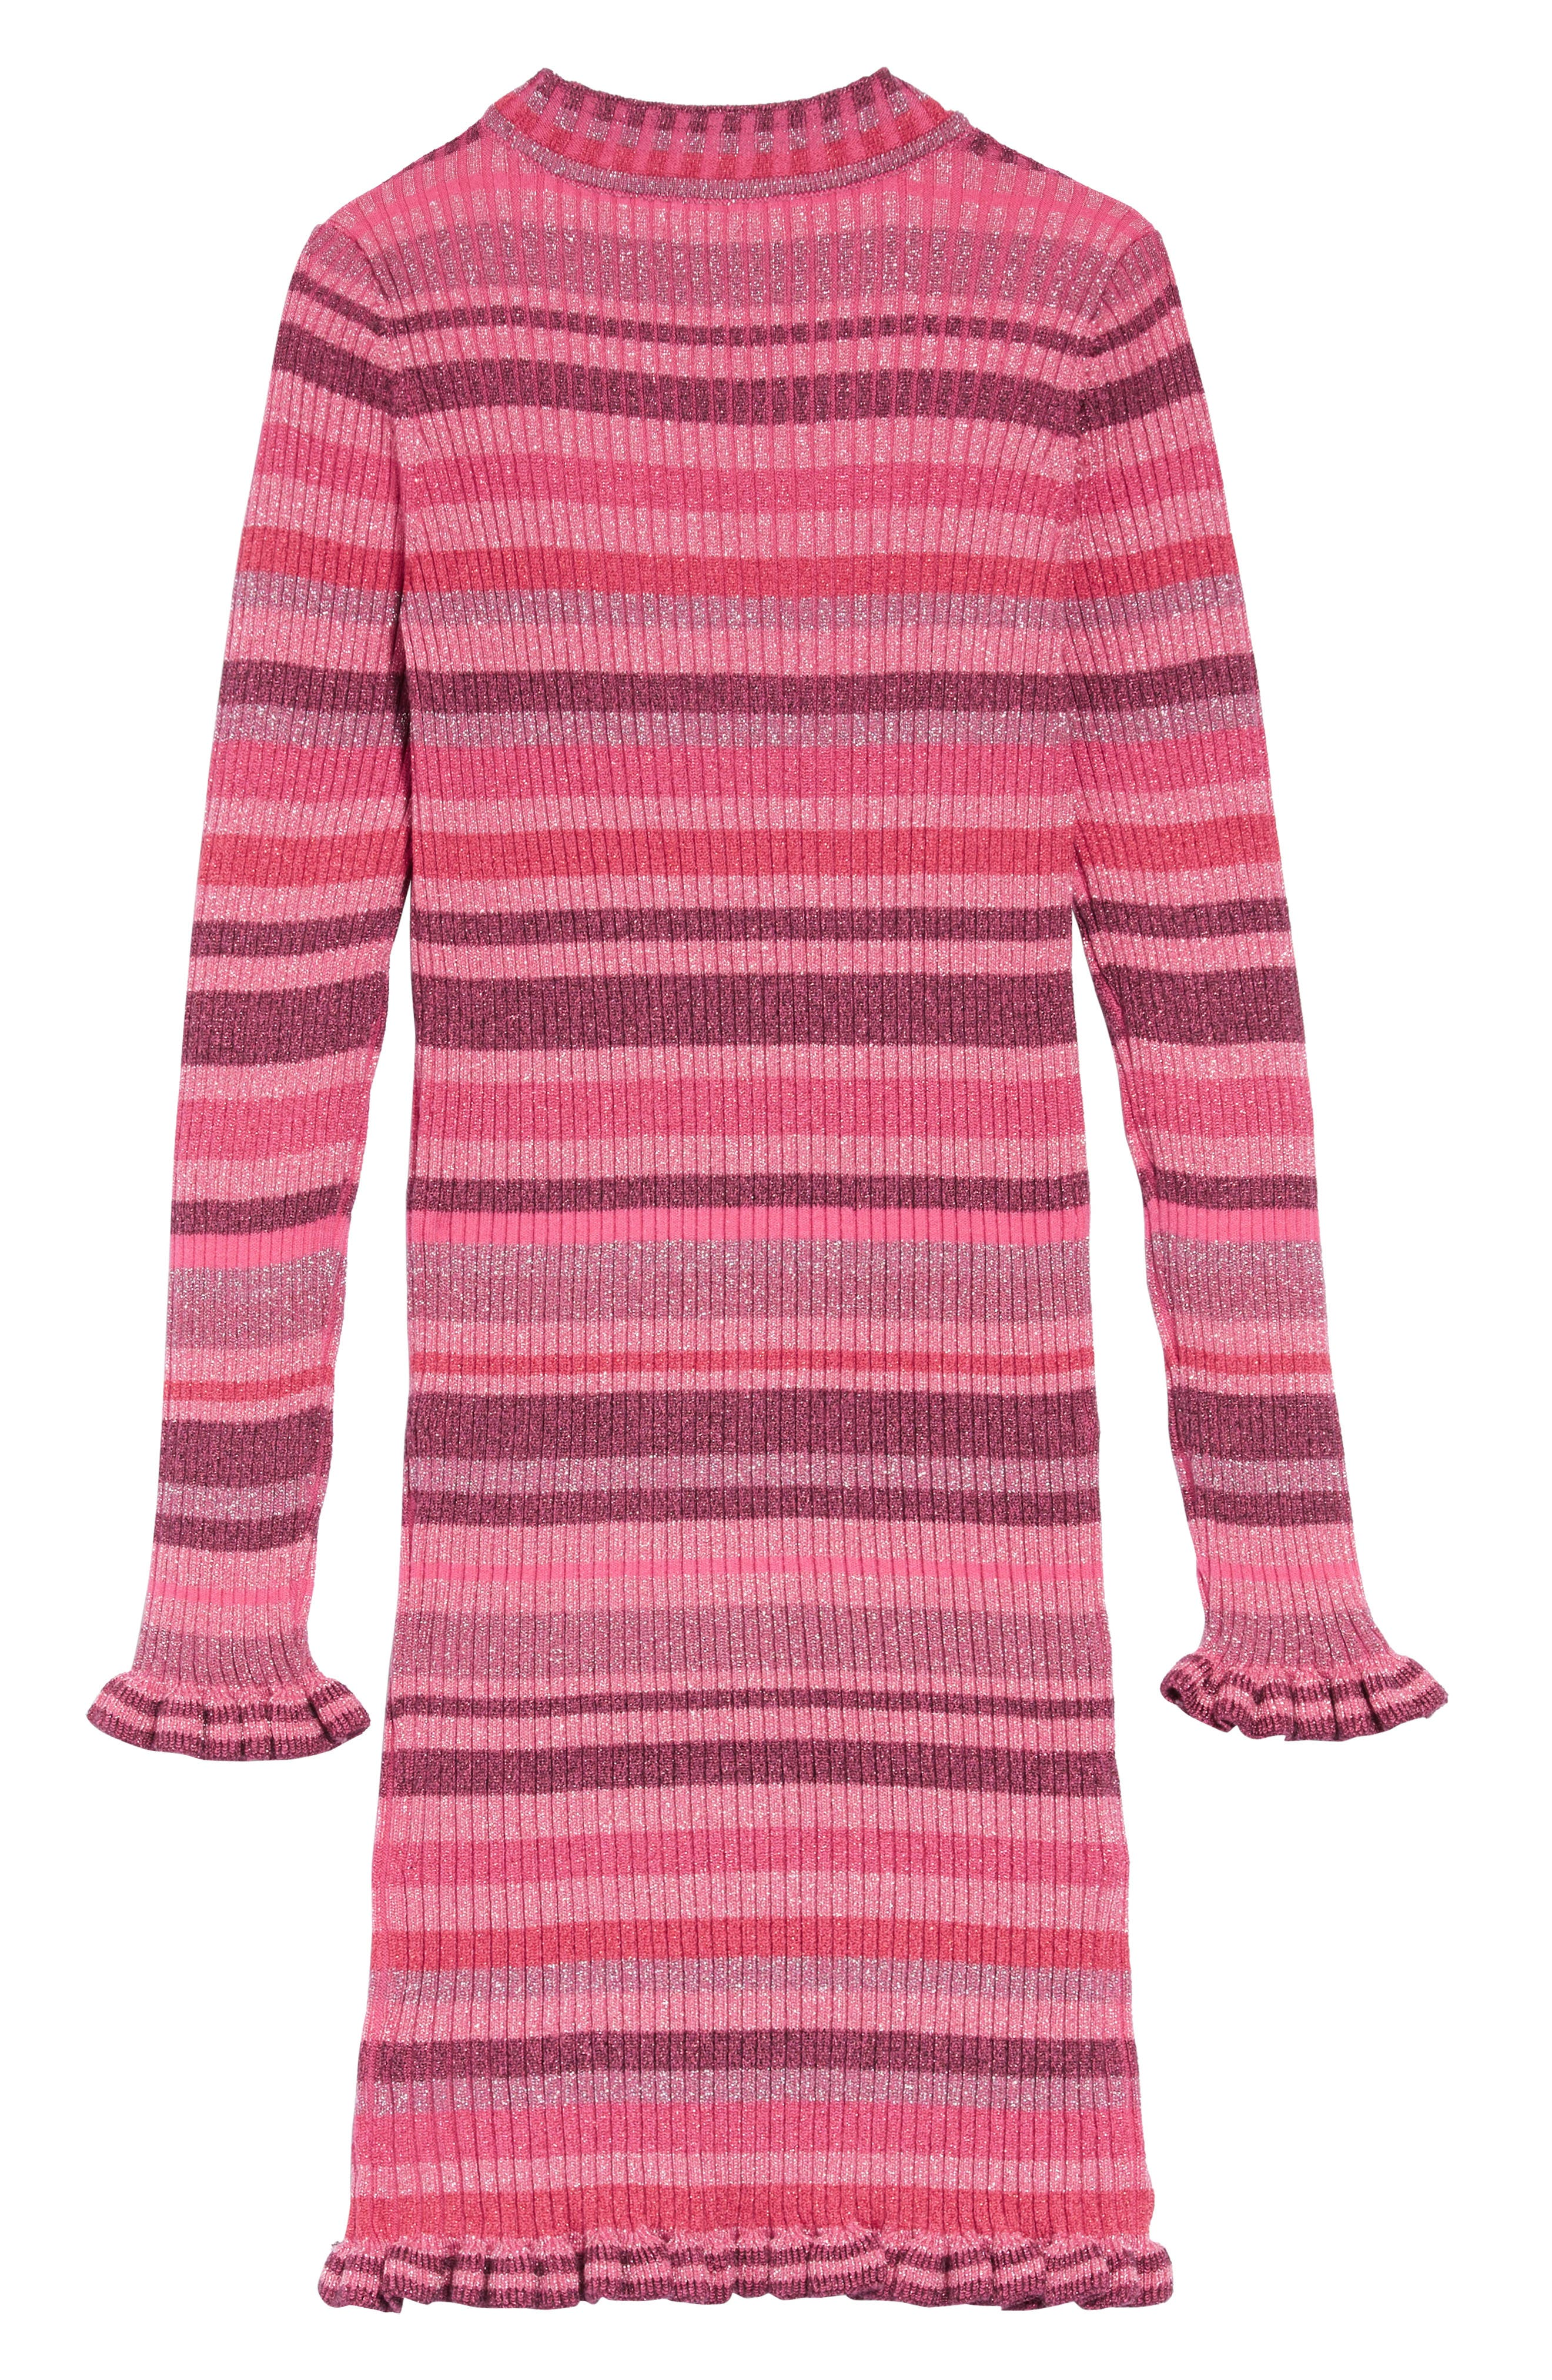 Metallic Stripe Sweater Dress,                             Alternate thumbnail 2, color,                             PINK MULTI